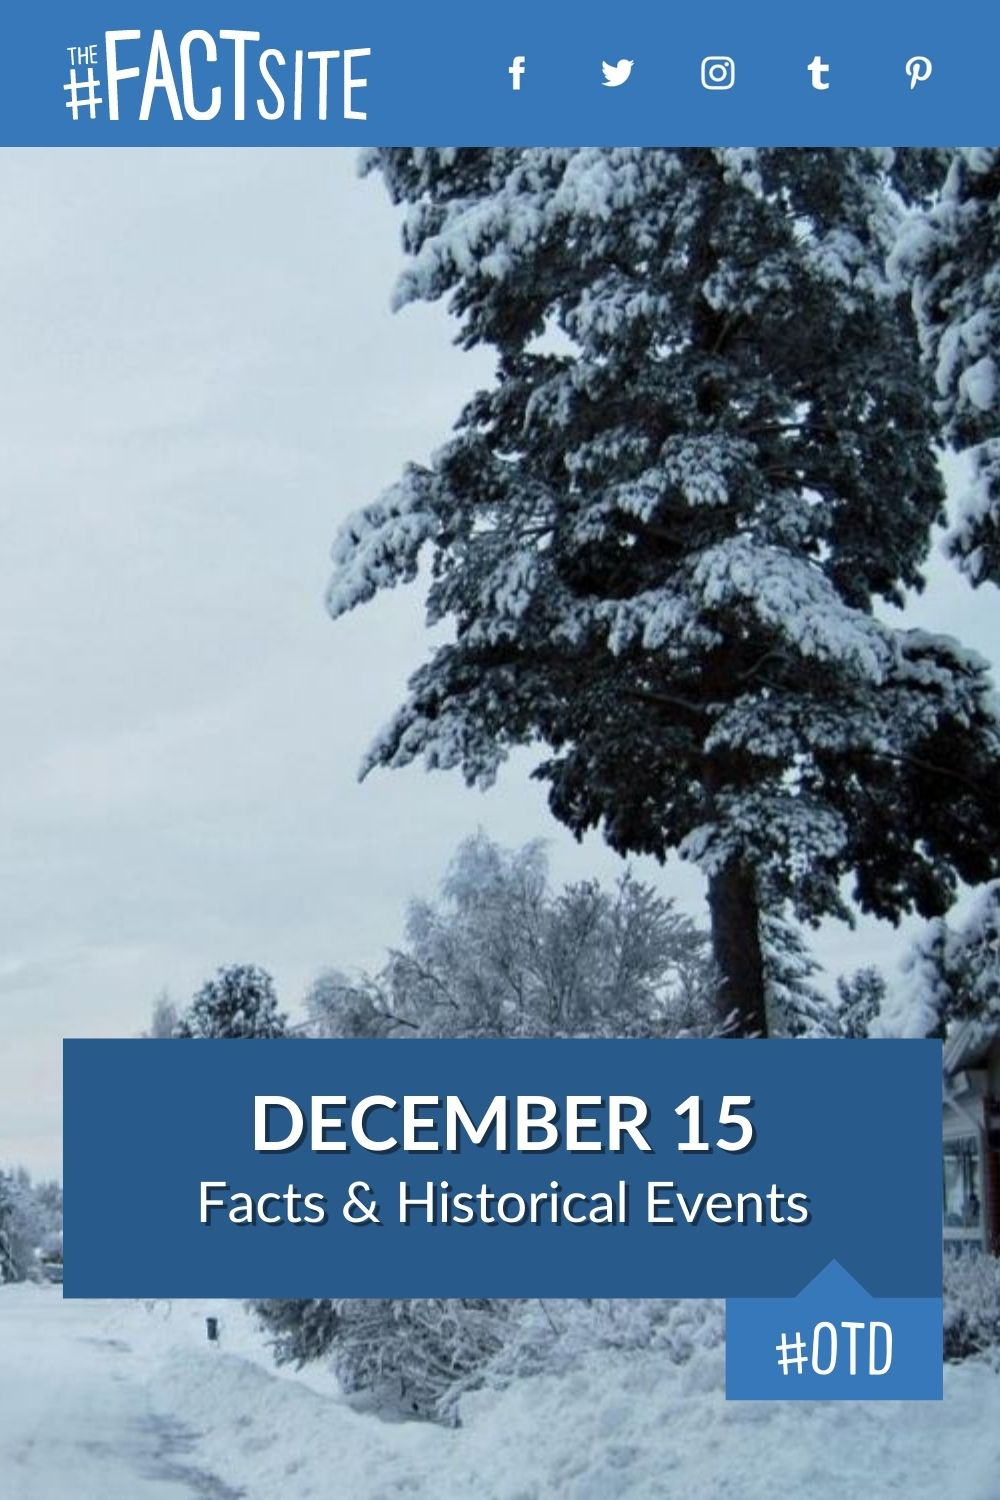 Facts & Historic Events That Happened on December 15